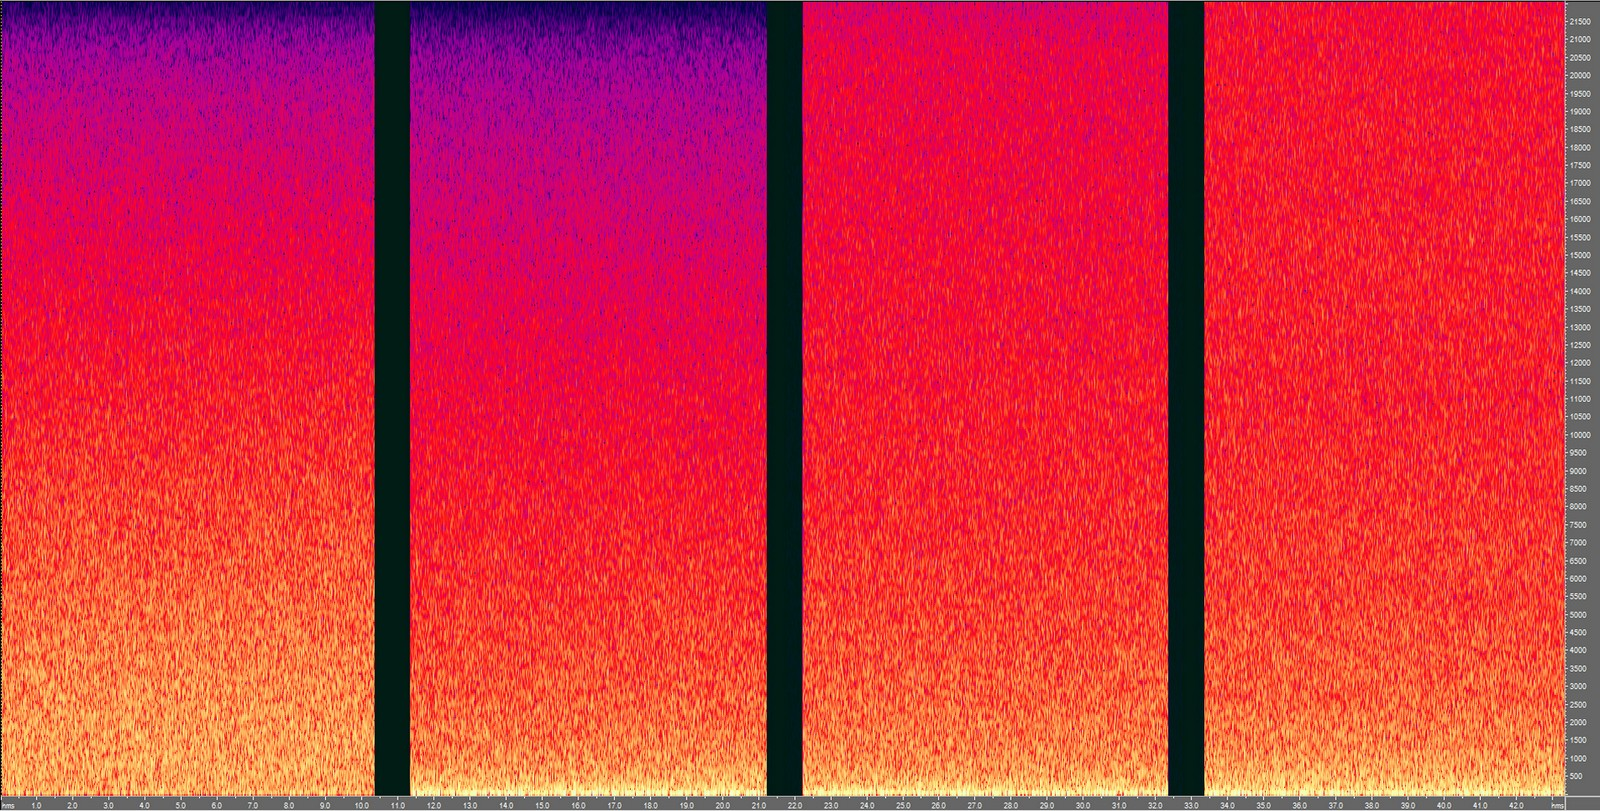 Pink noise comparison spectrogram